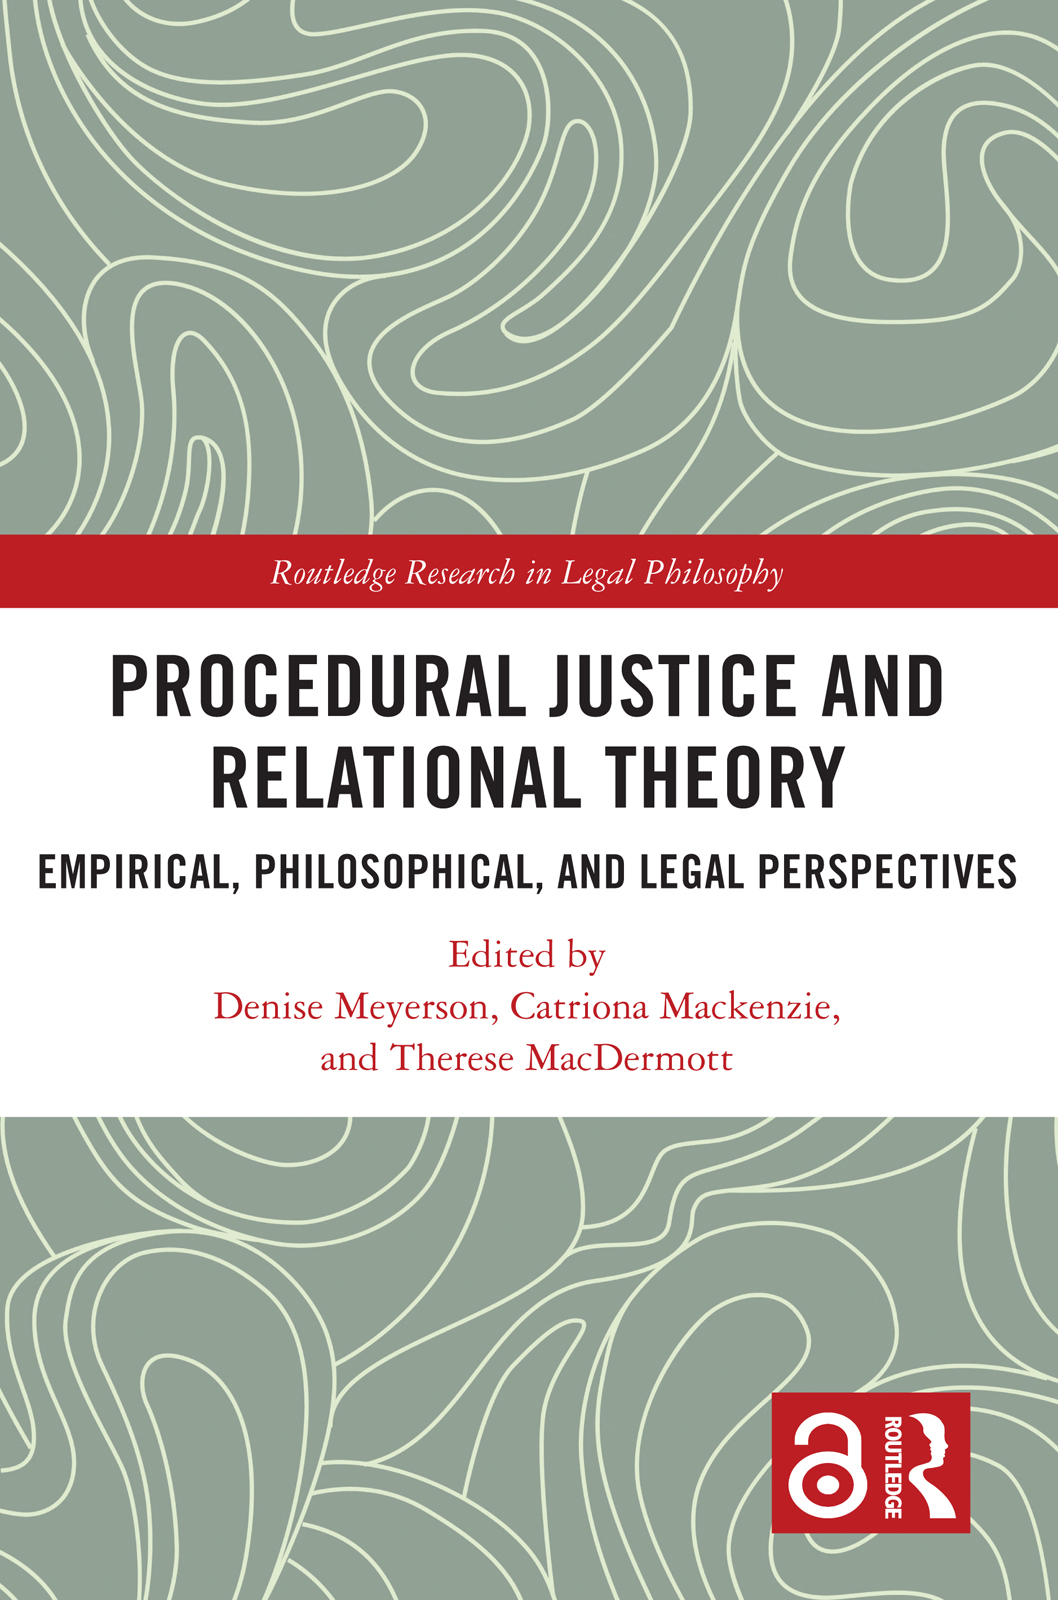 Procedural justice, relational equality, and self-respect